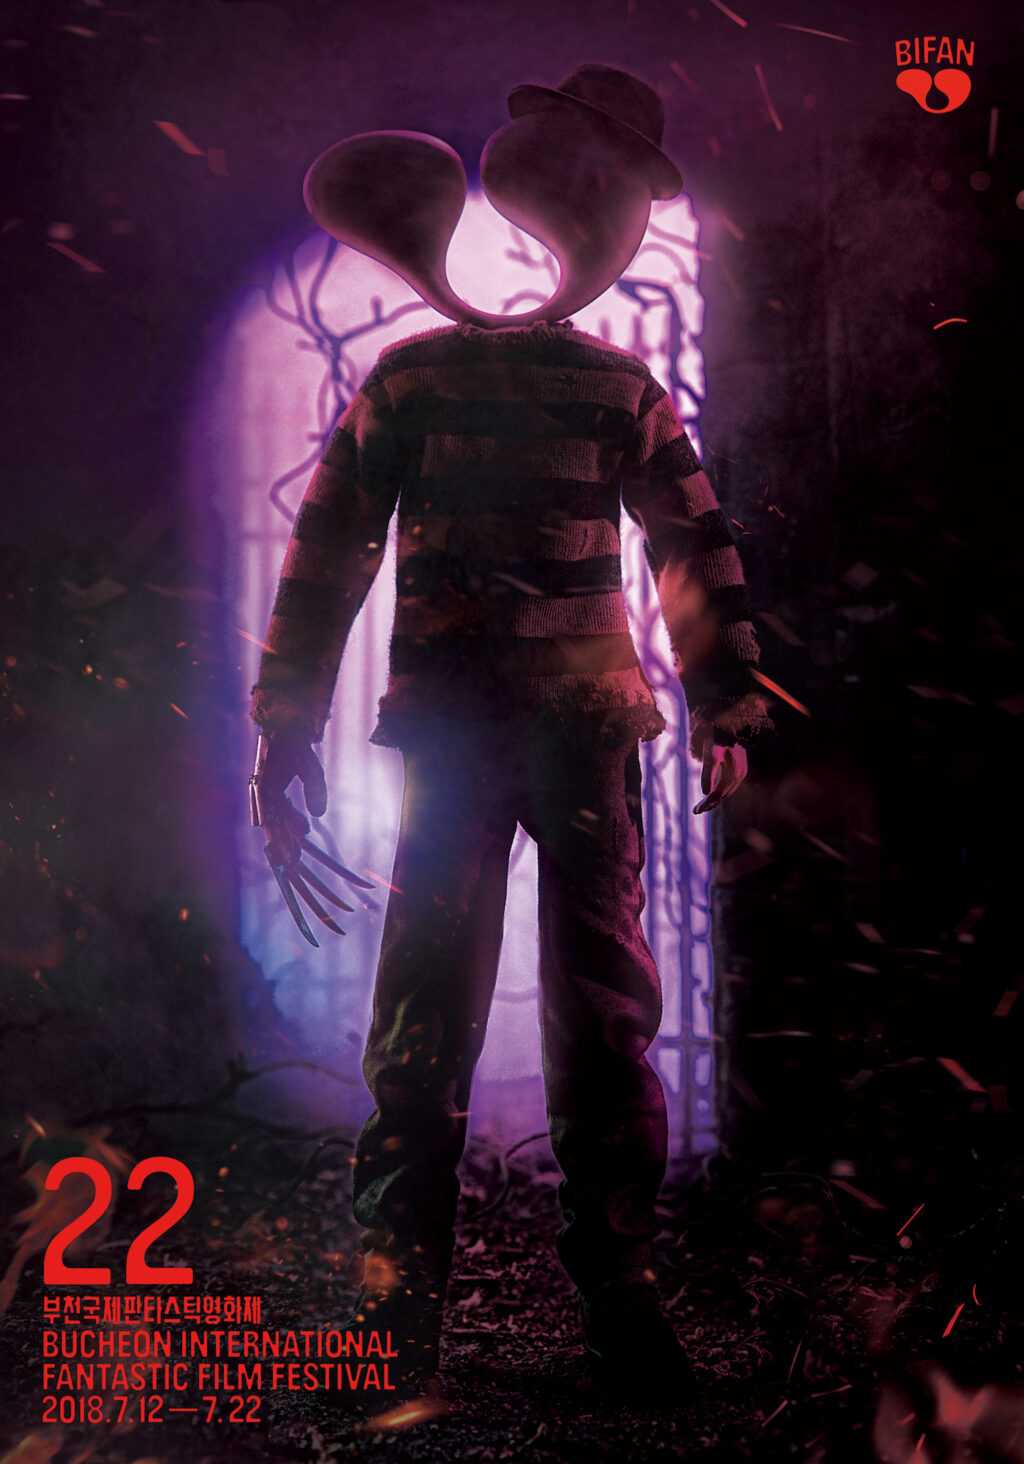 22nd BIFAN Official Poster 4 1024x1464 - BIFAN 2018: Official Posters See Freddy Krueger as a Dog Owner and It's Adorable